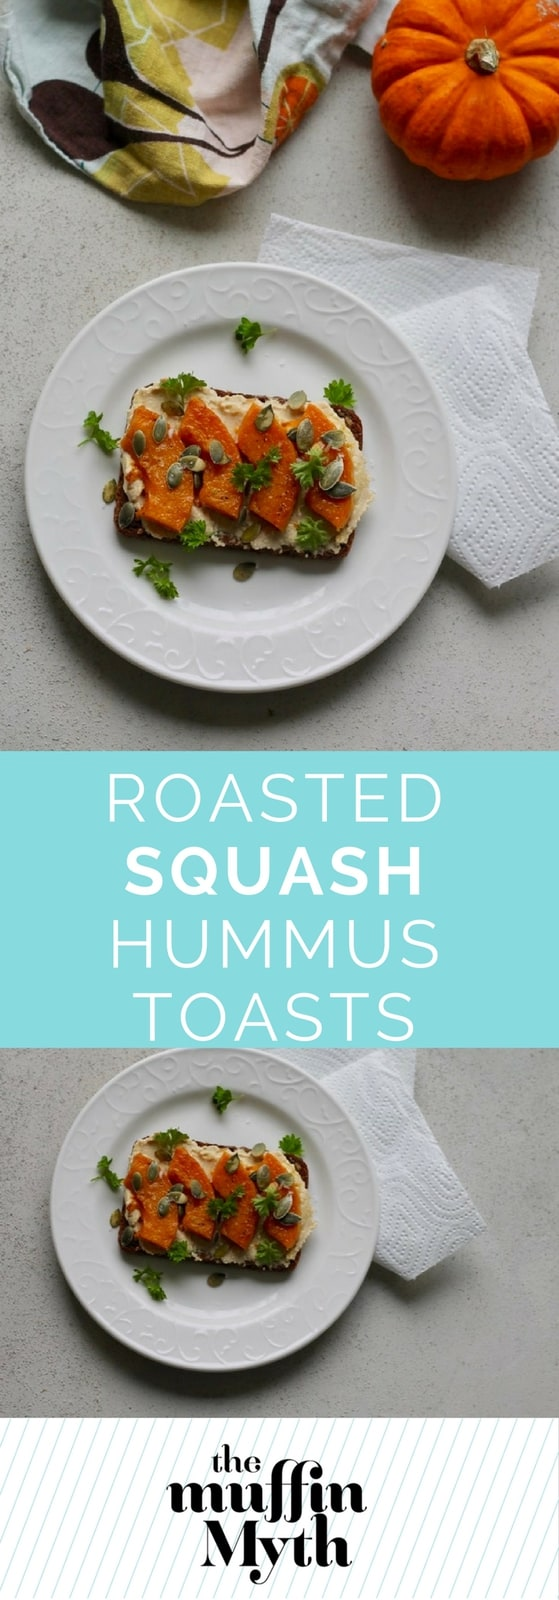 Roasted Squash Hummus Toasts! Butternut squash, hummus, and toasted pumpkin seeds are layered onto rye toast for a simple lunch or snack.